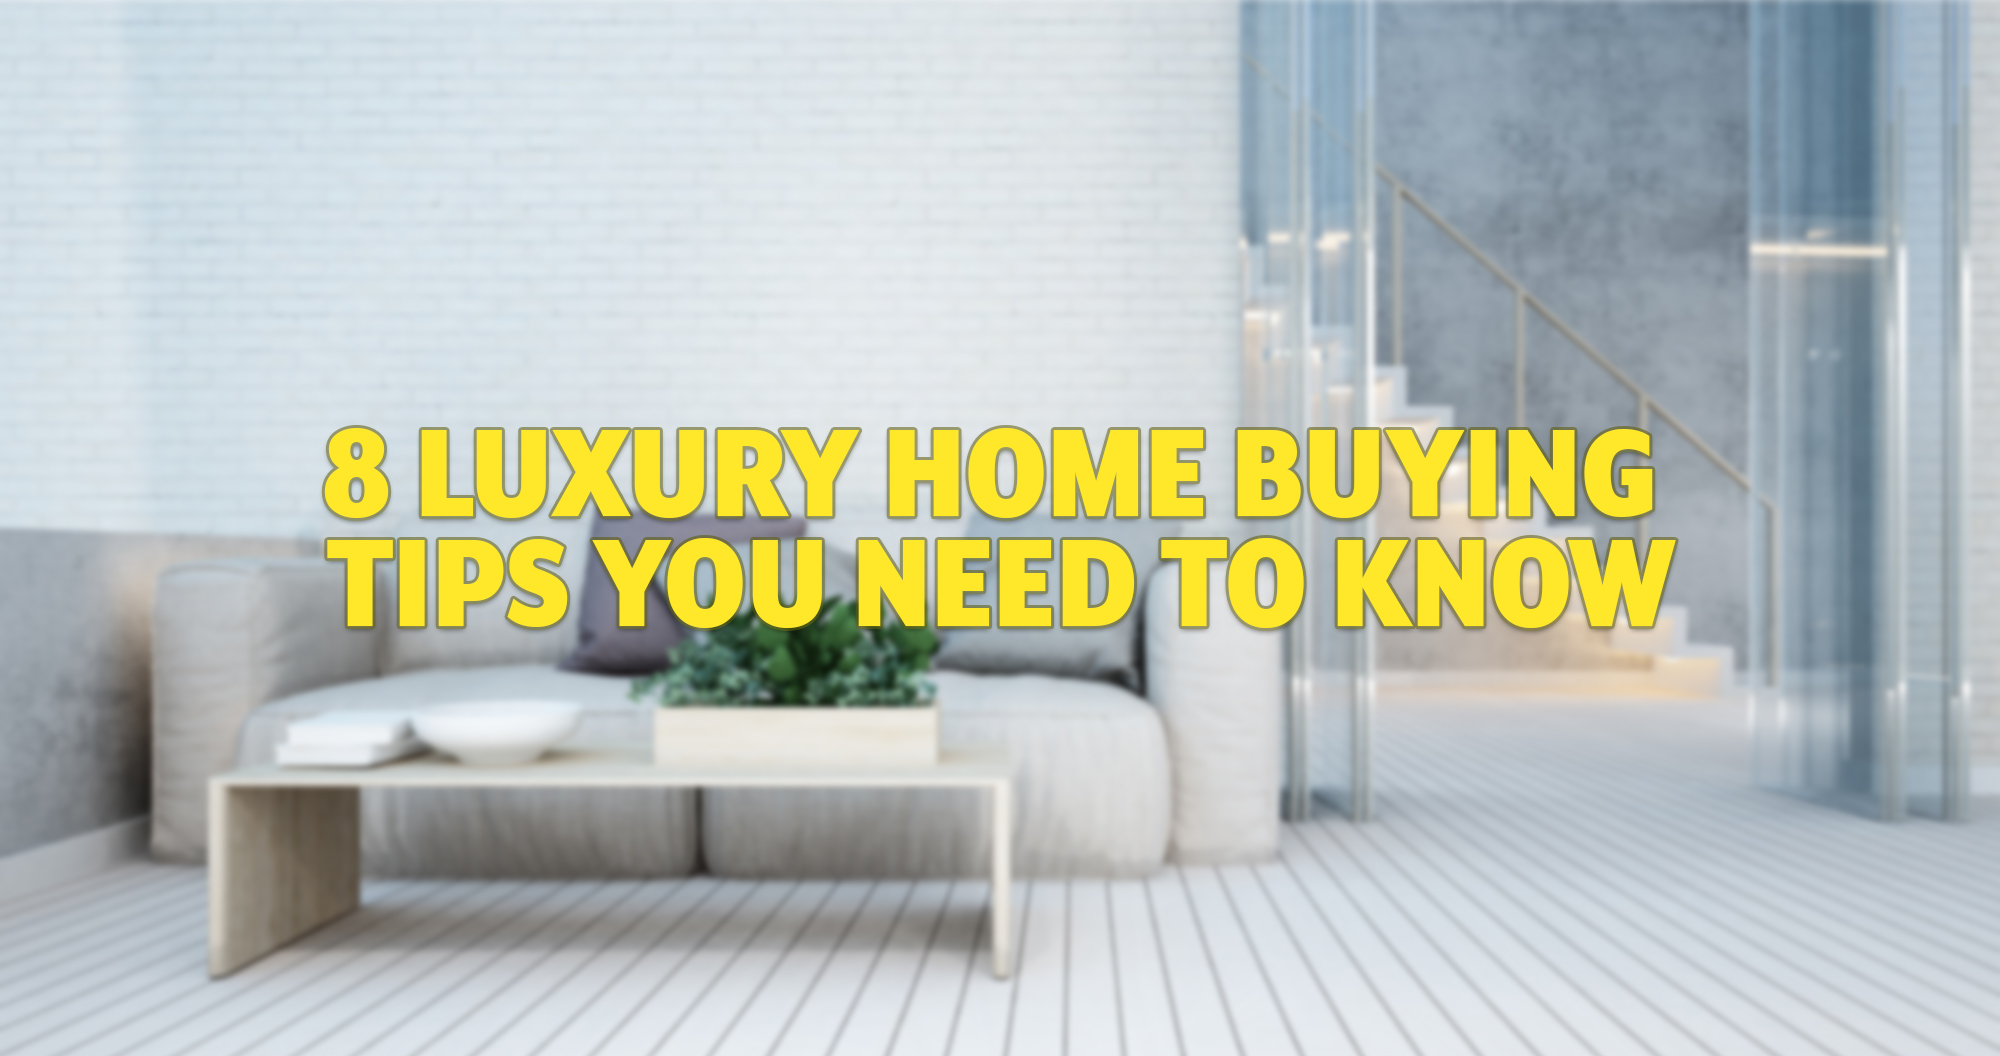 8 Luxury Home Buying Tips You Need to Know